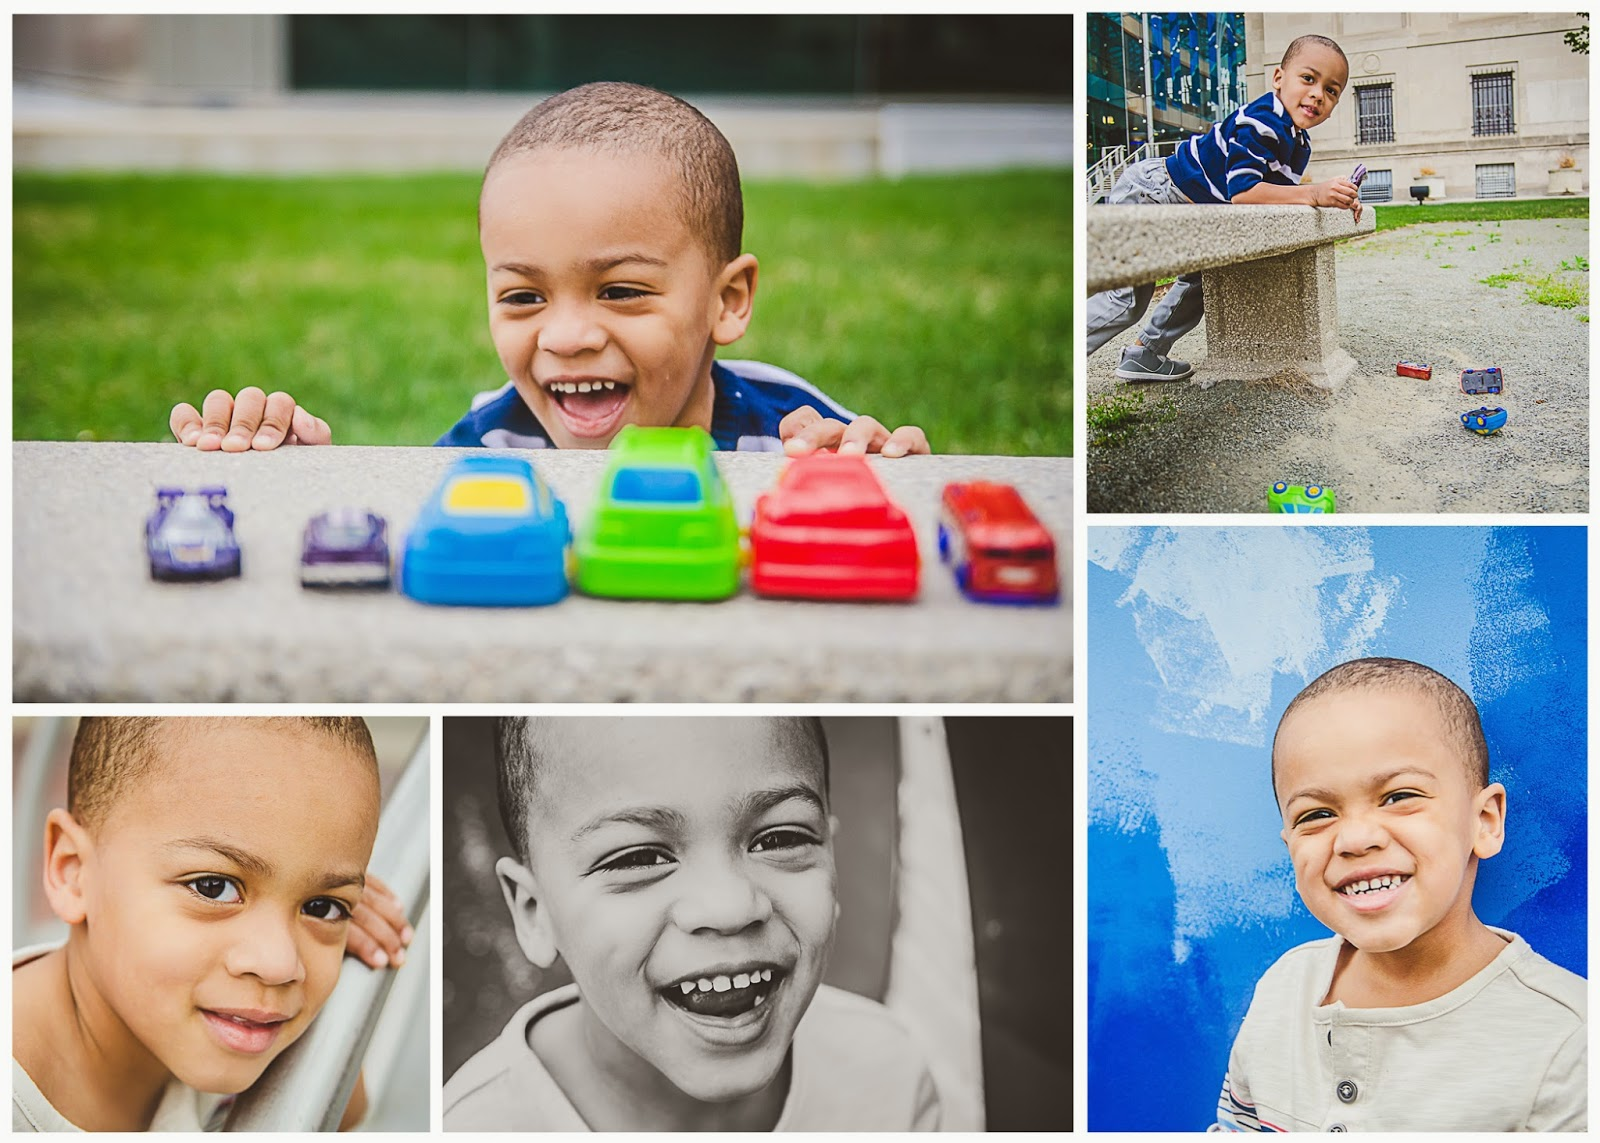 Jordan playing with cars and smiling at his downtown indianapolis photography session by indy child photographer ashlee lauren